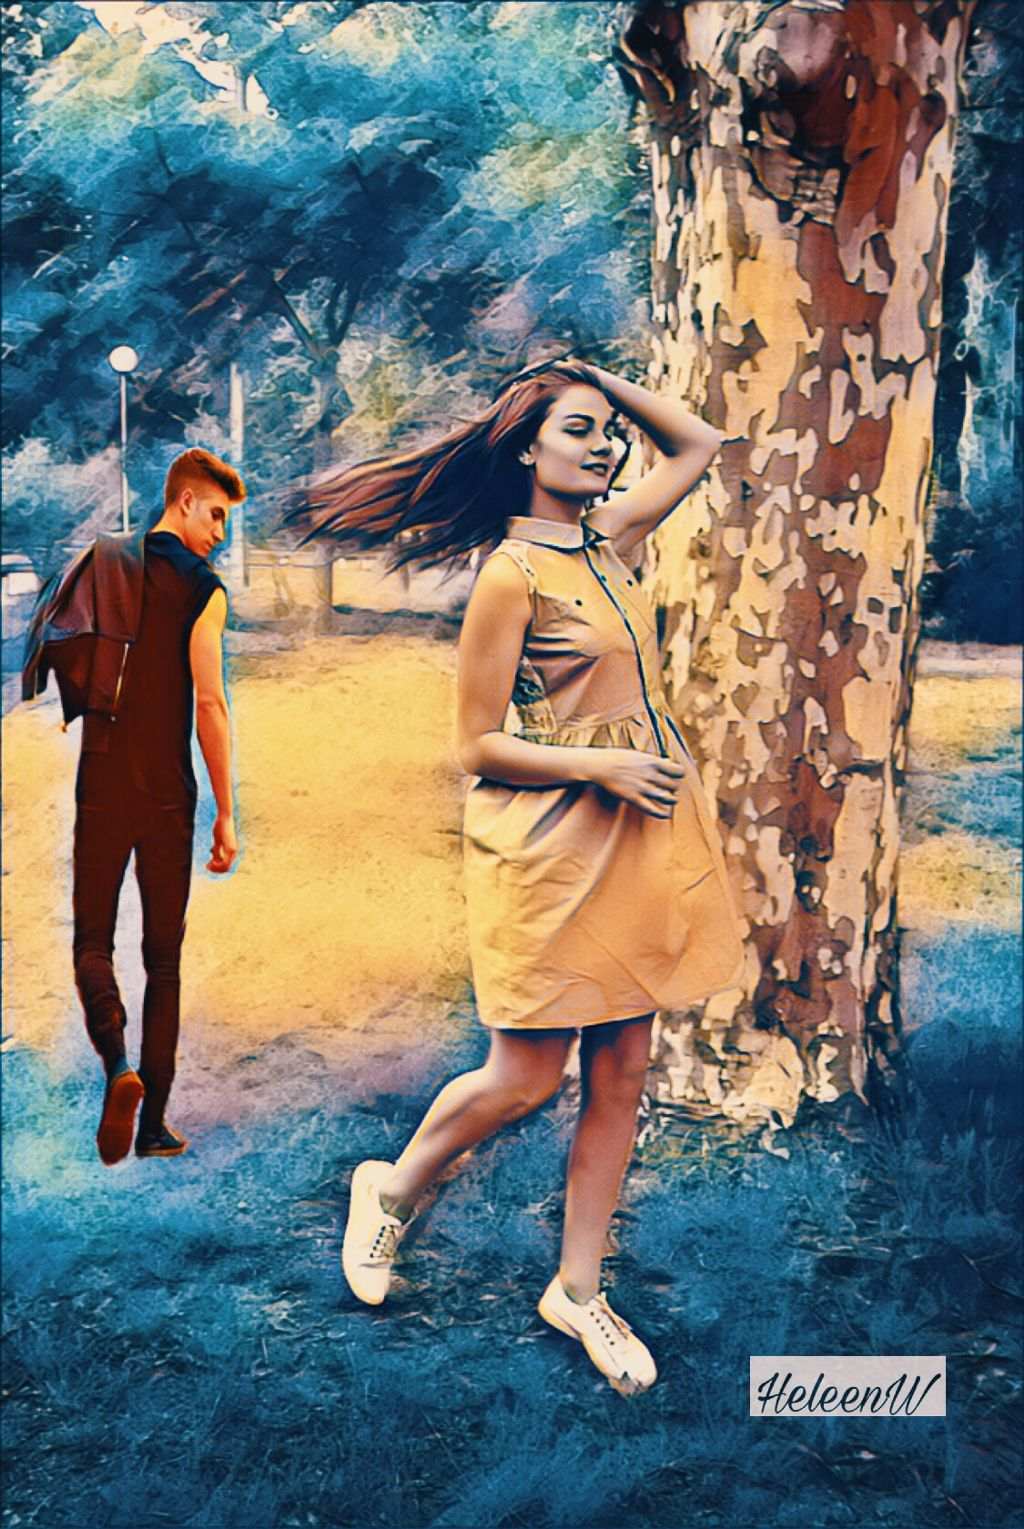 #vipshoutout to @serg.60.denis Look to his gallery and give him some love #girl #boy #forest #fantasy #surrealism #colored #madewithpicsart #myedit #myart #mystyle #freetoedit